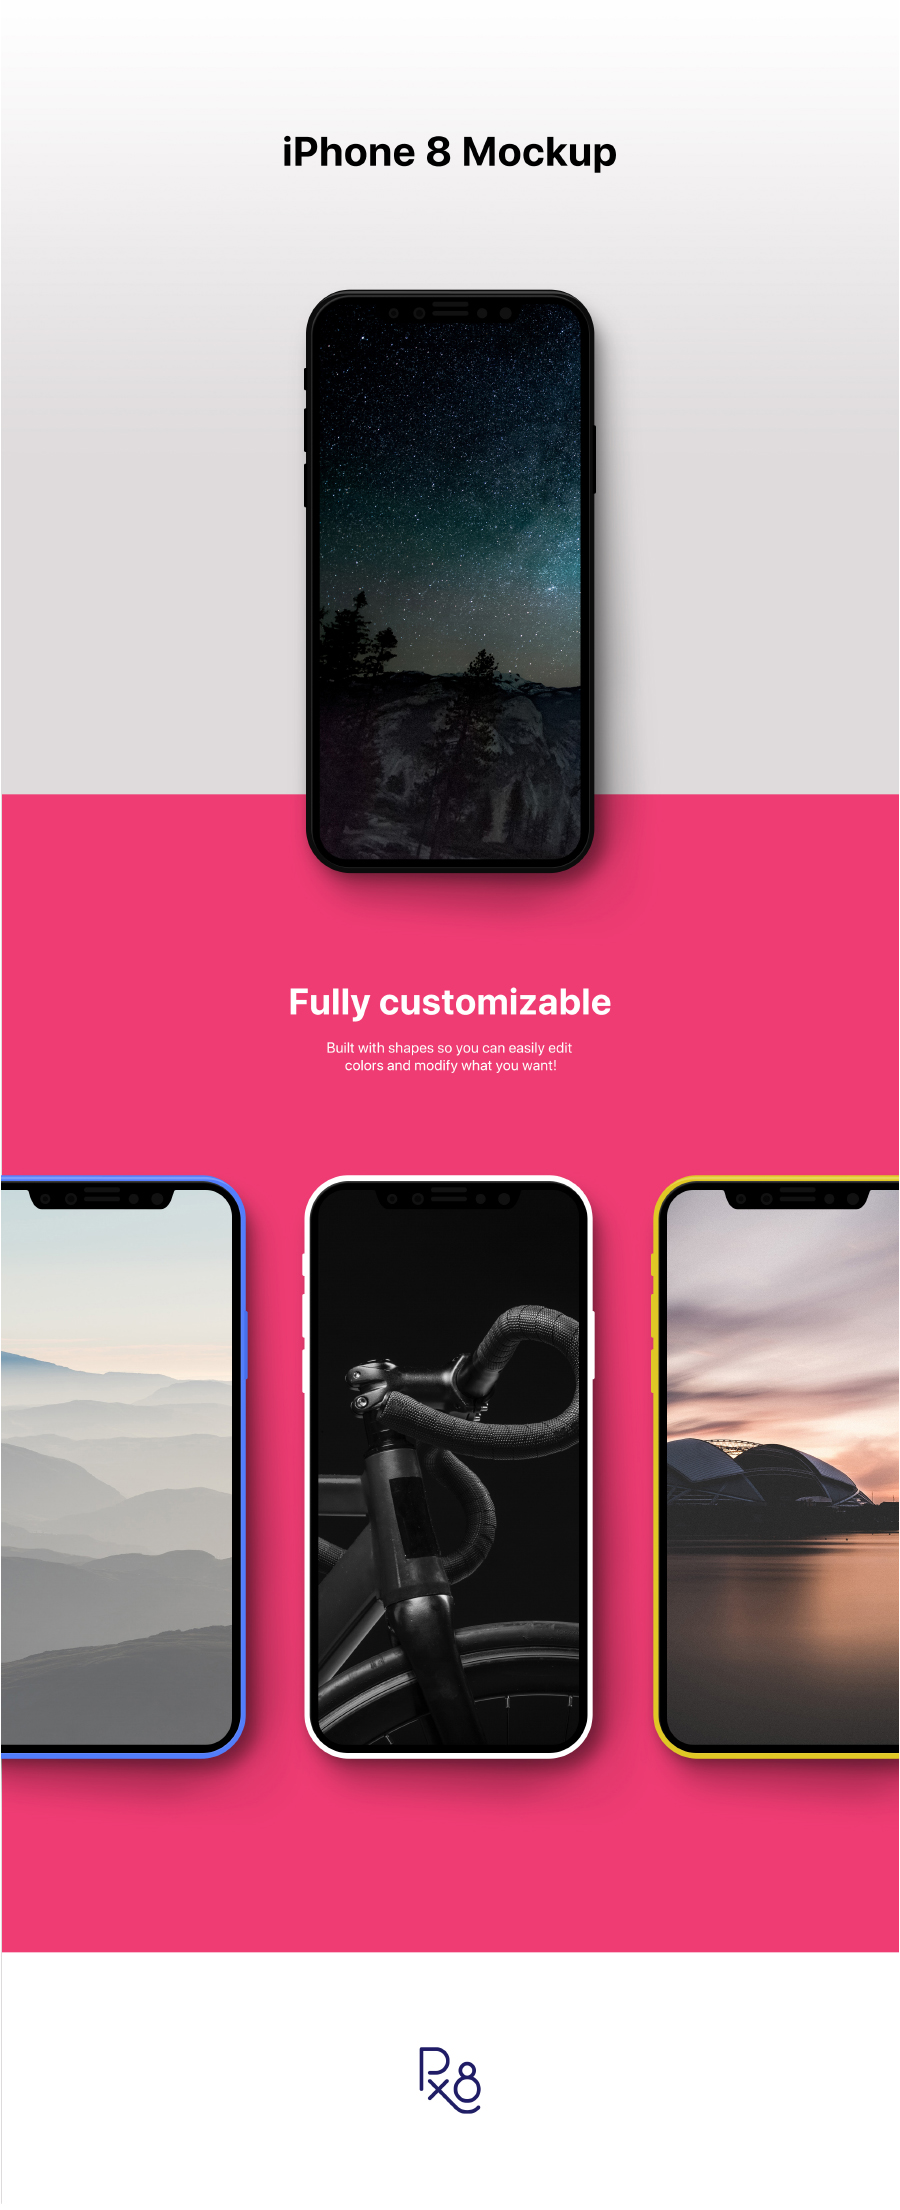 Iphone 8 Mockup Psd Freebie Free Design Resources